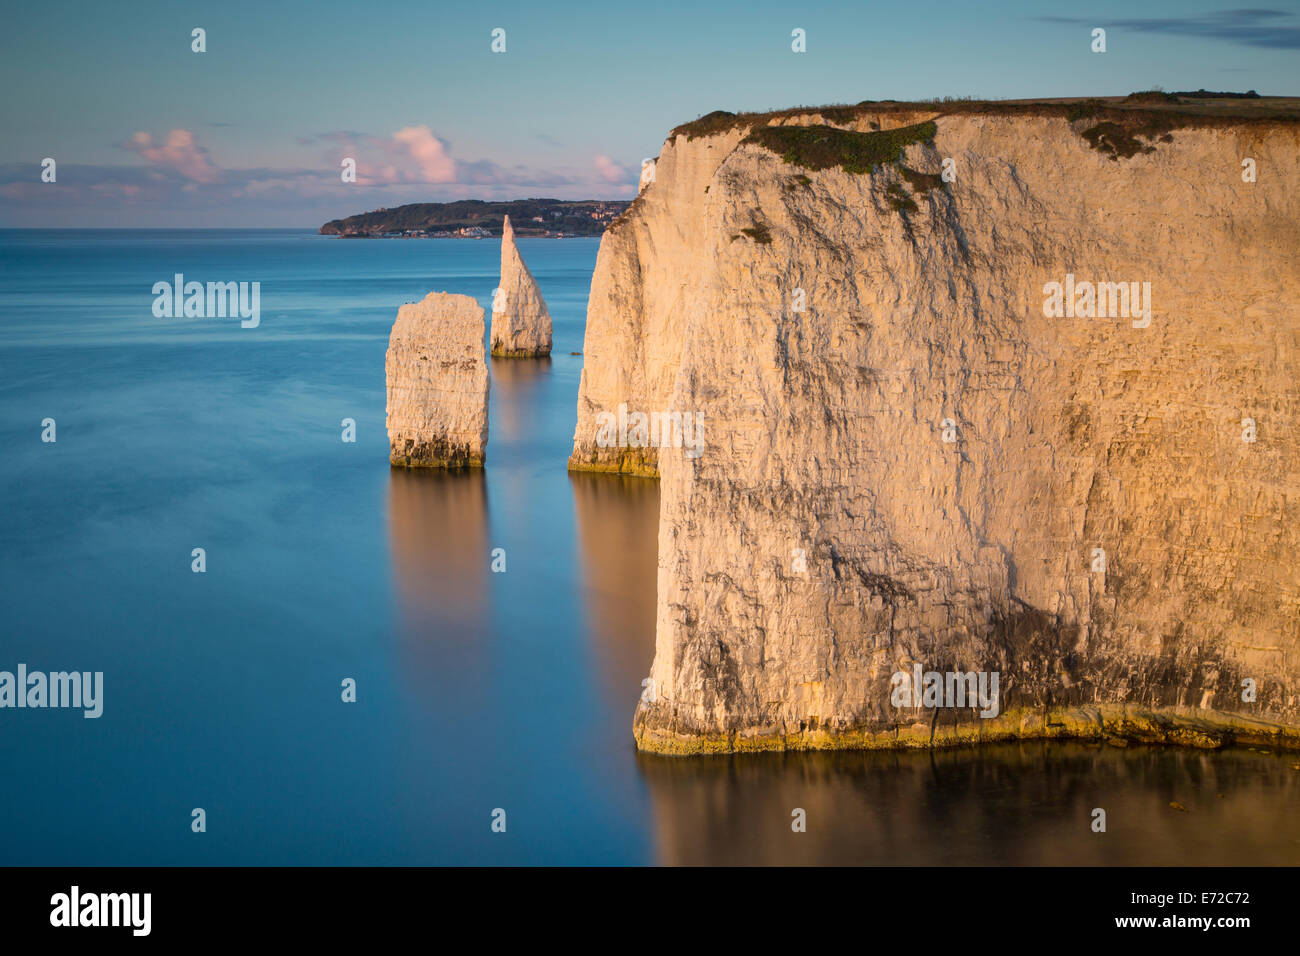 Dawn at the white cliffs and Harry Rocks at Studland, Isle of Purbeck, Jurassic Coast, Dorset, England - Stock Image